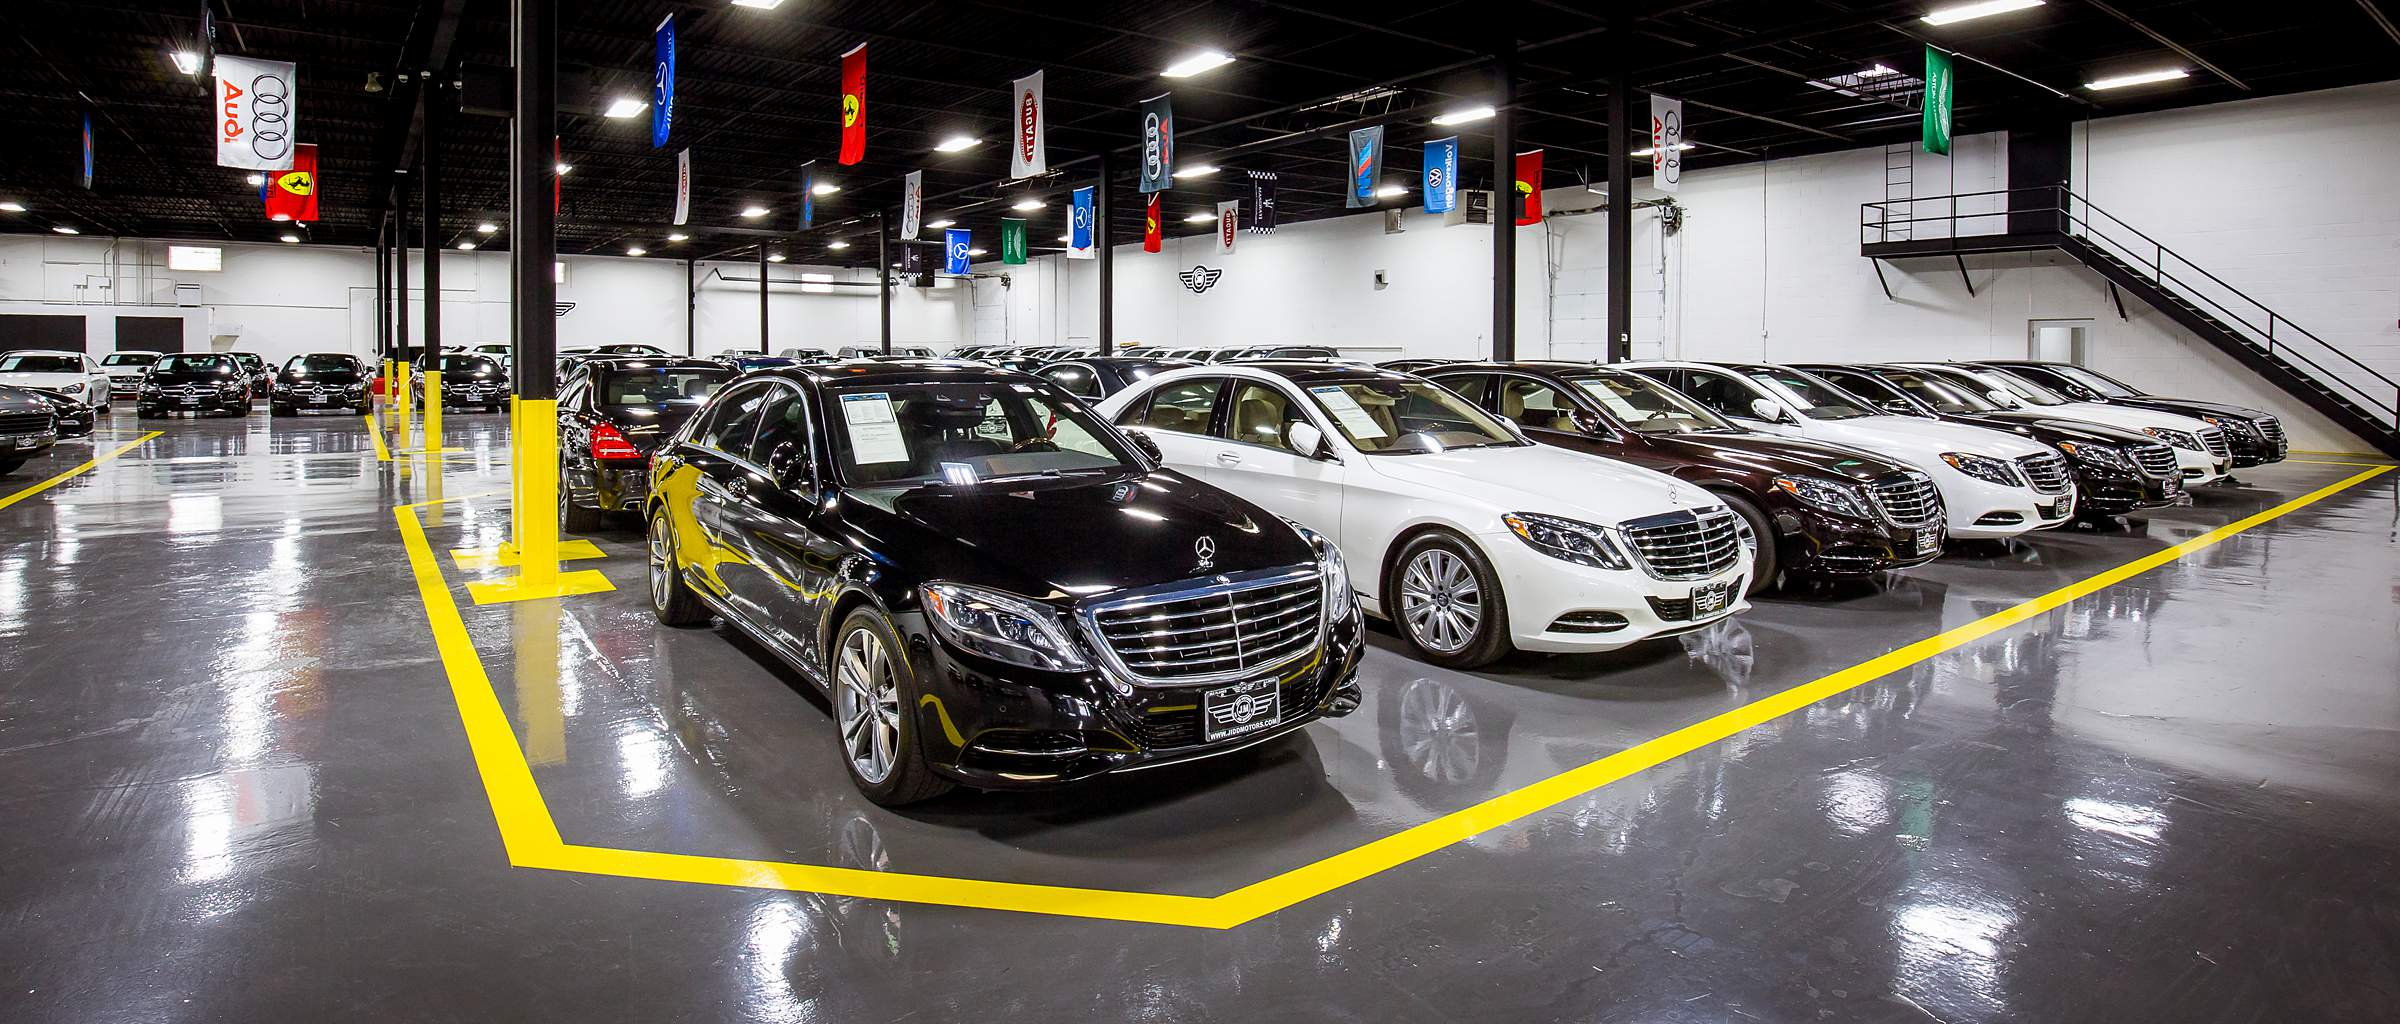 Jidd Motors Luxury Auto Gallery In Chicago Virtual Tour See Inside